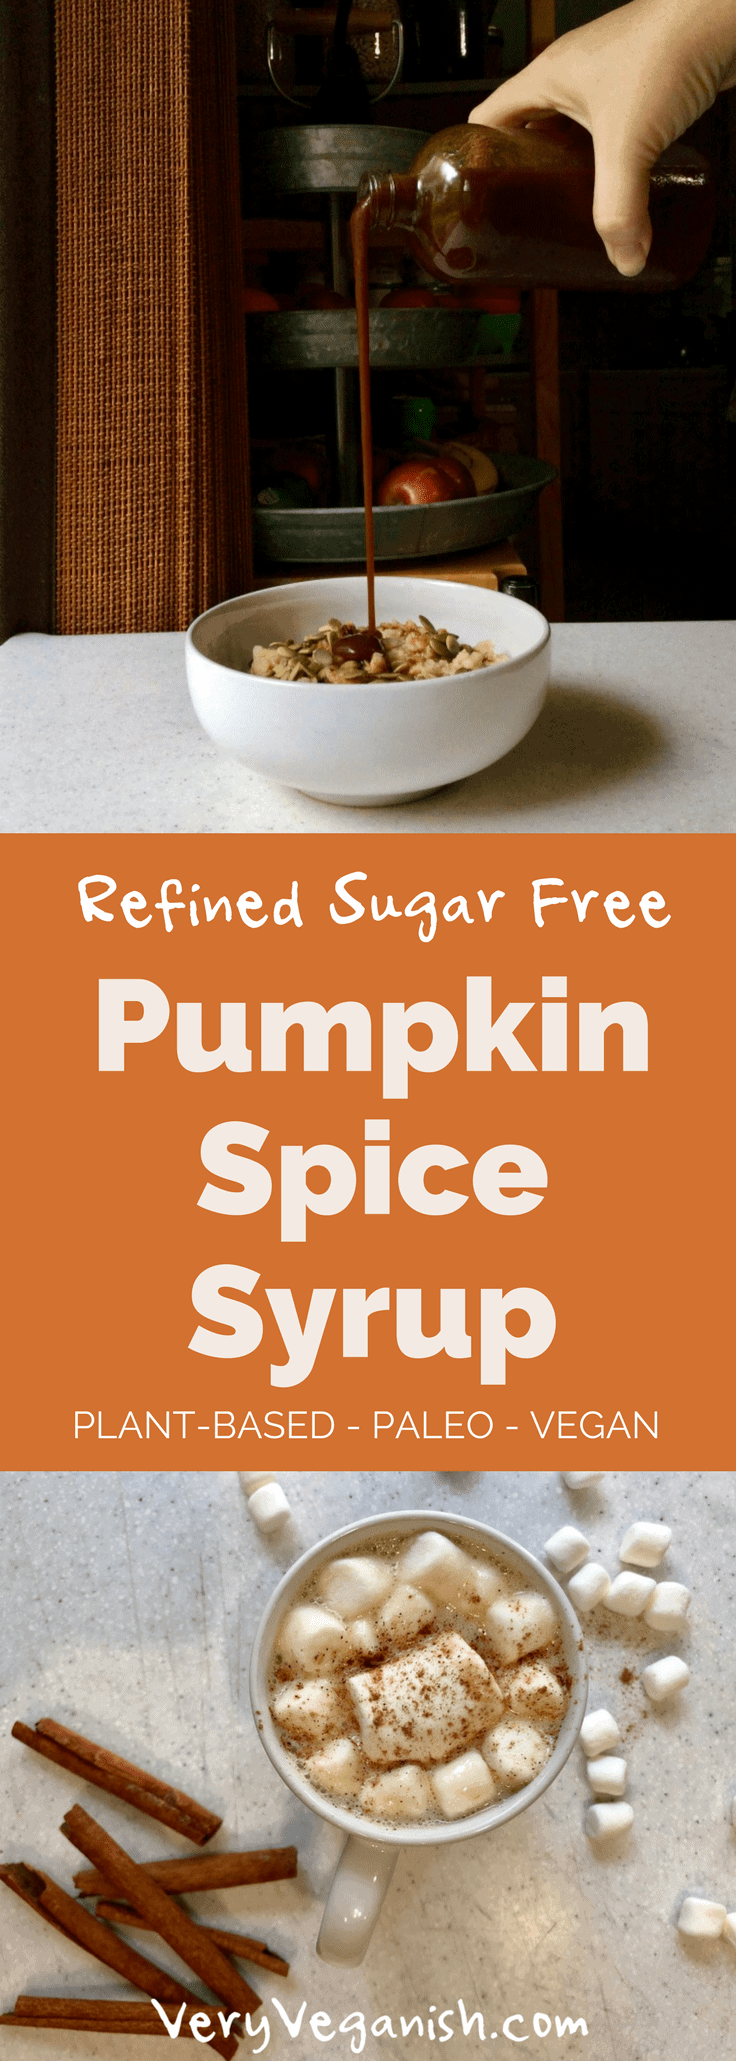 Pumpkin Spice Syrup Refined Sugar Free that's Paleo, Vegan and Plant-based. Kids love it and it's great for pumpkin spice lattes, oatmeal, pancakes or waffles! by Very Veganish